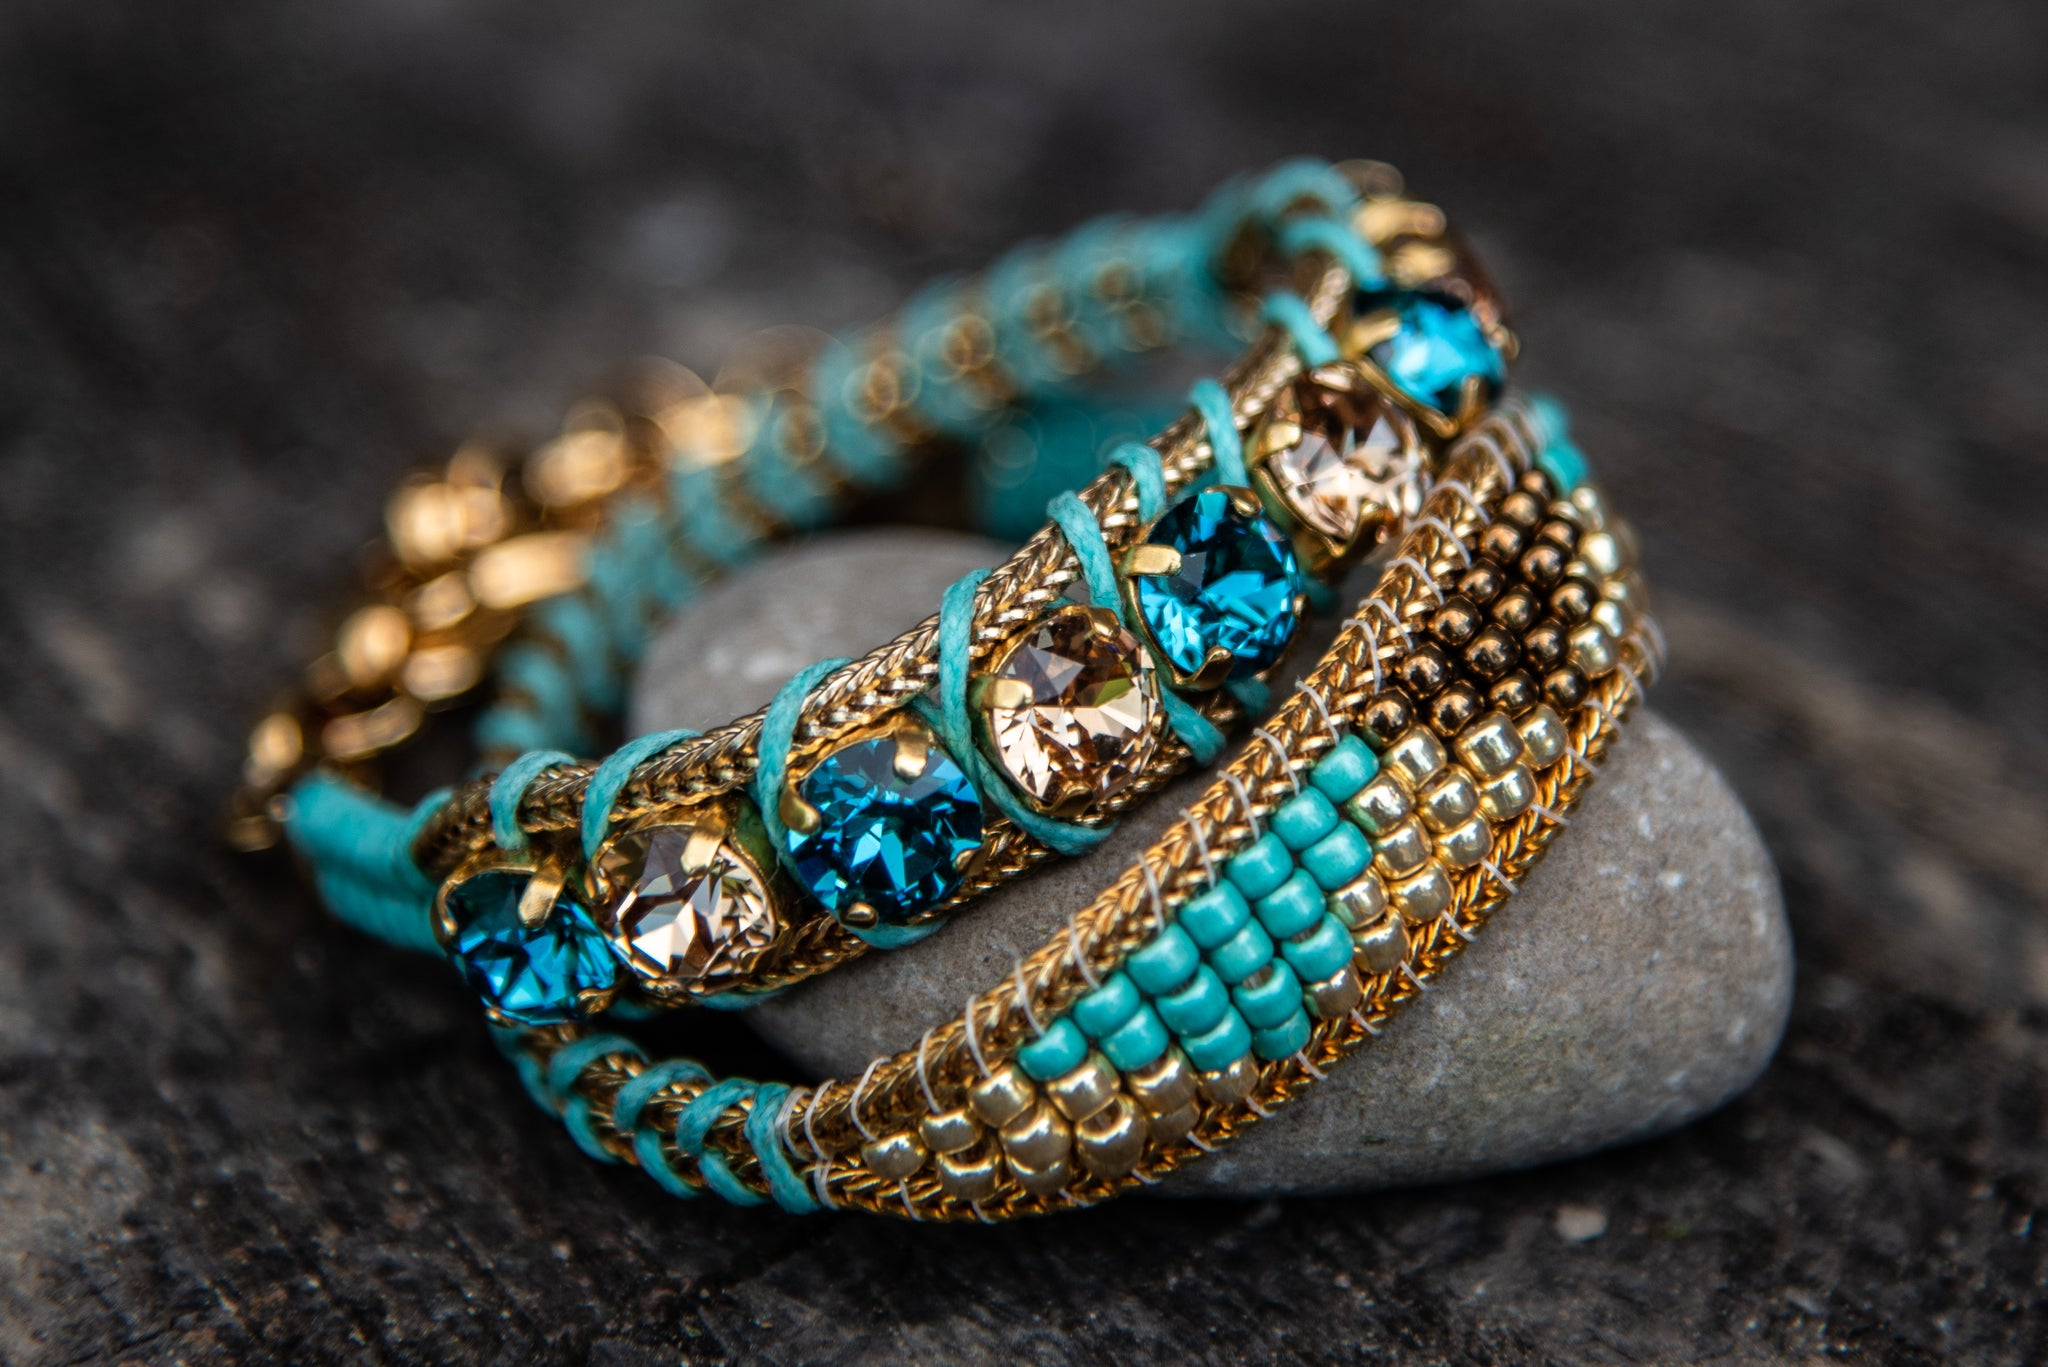 B-4053/1 Turquoise golds stones beaded wrap hook closure bracelet by LaHola